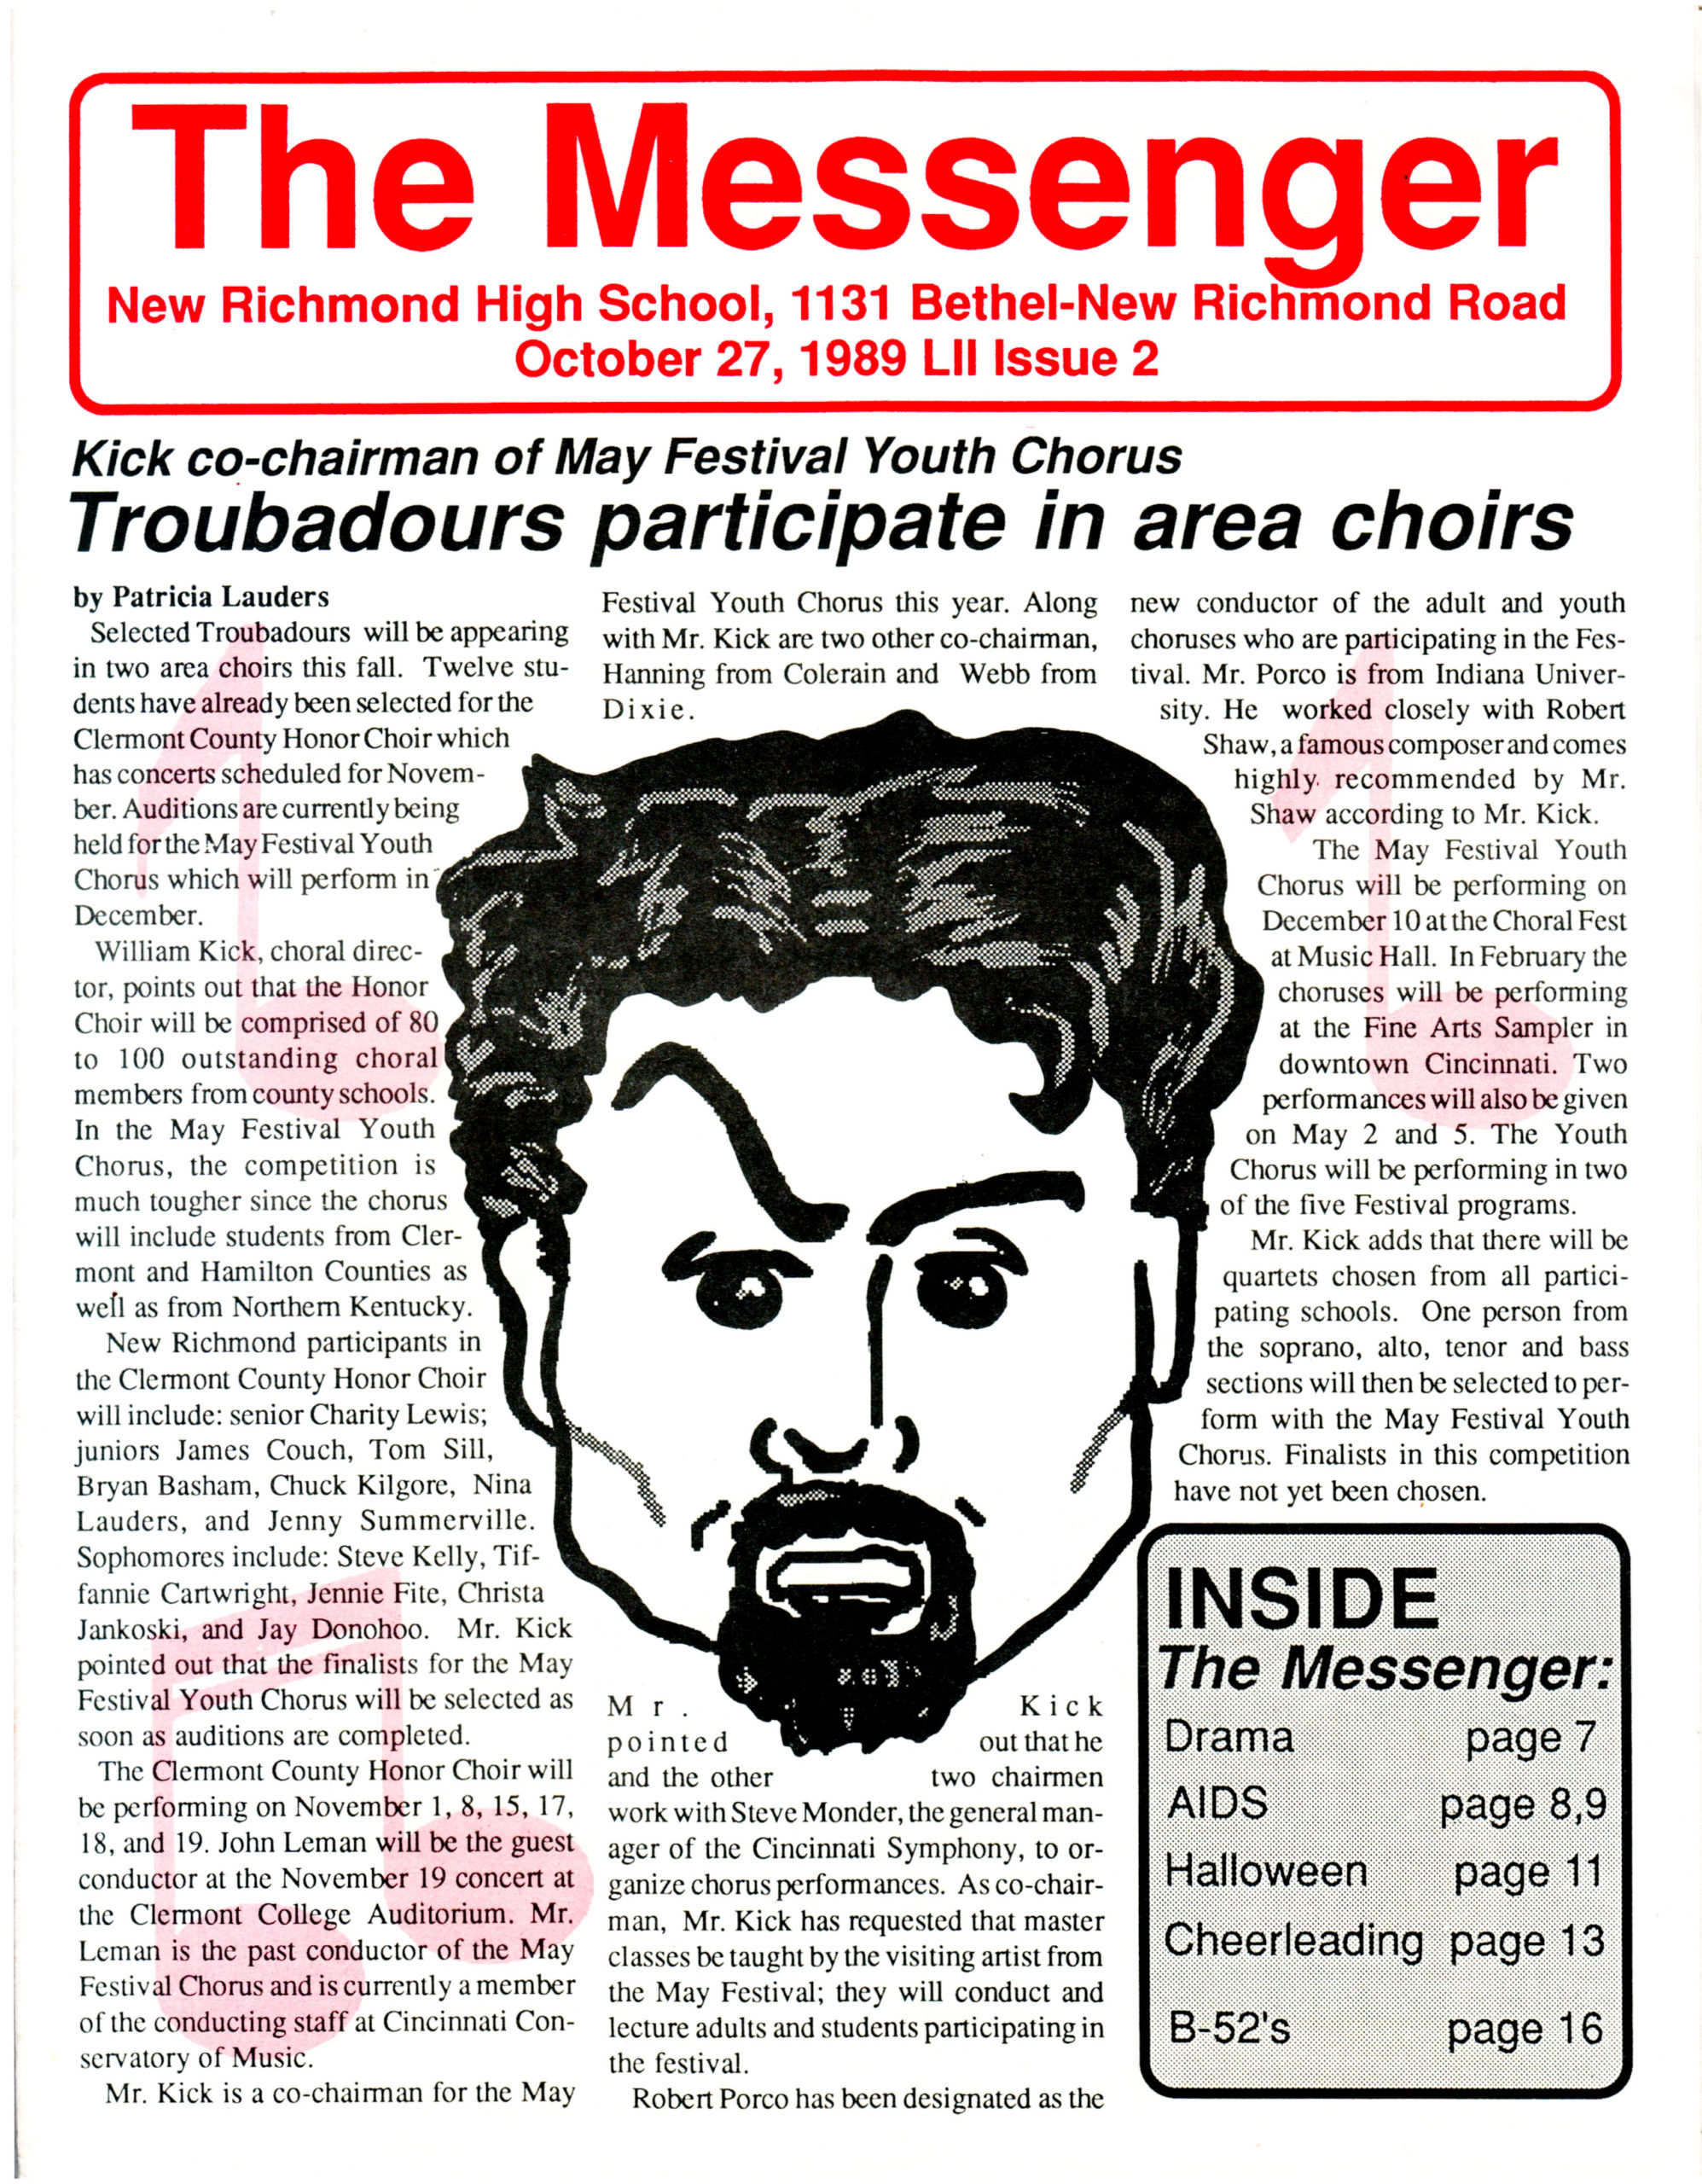 The Messenger newspaper cover page